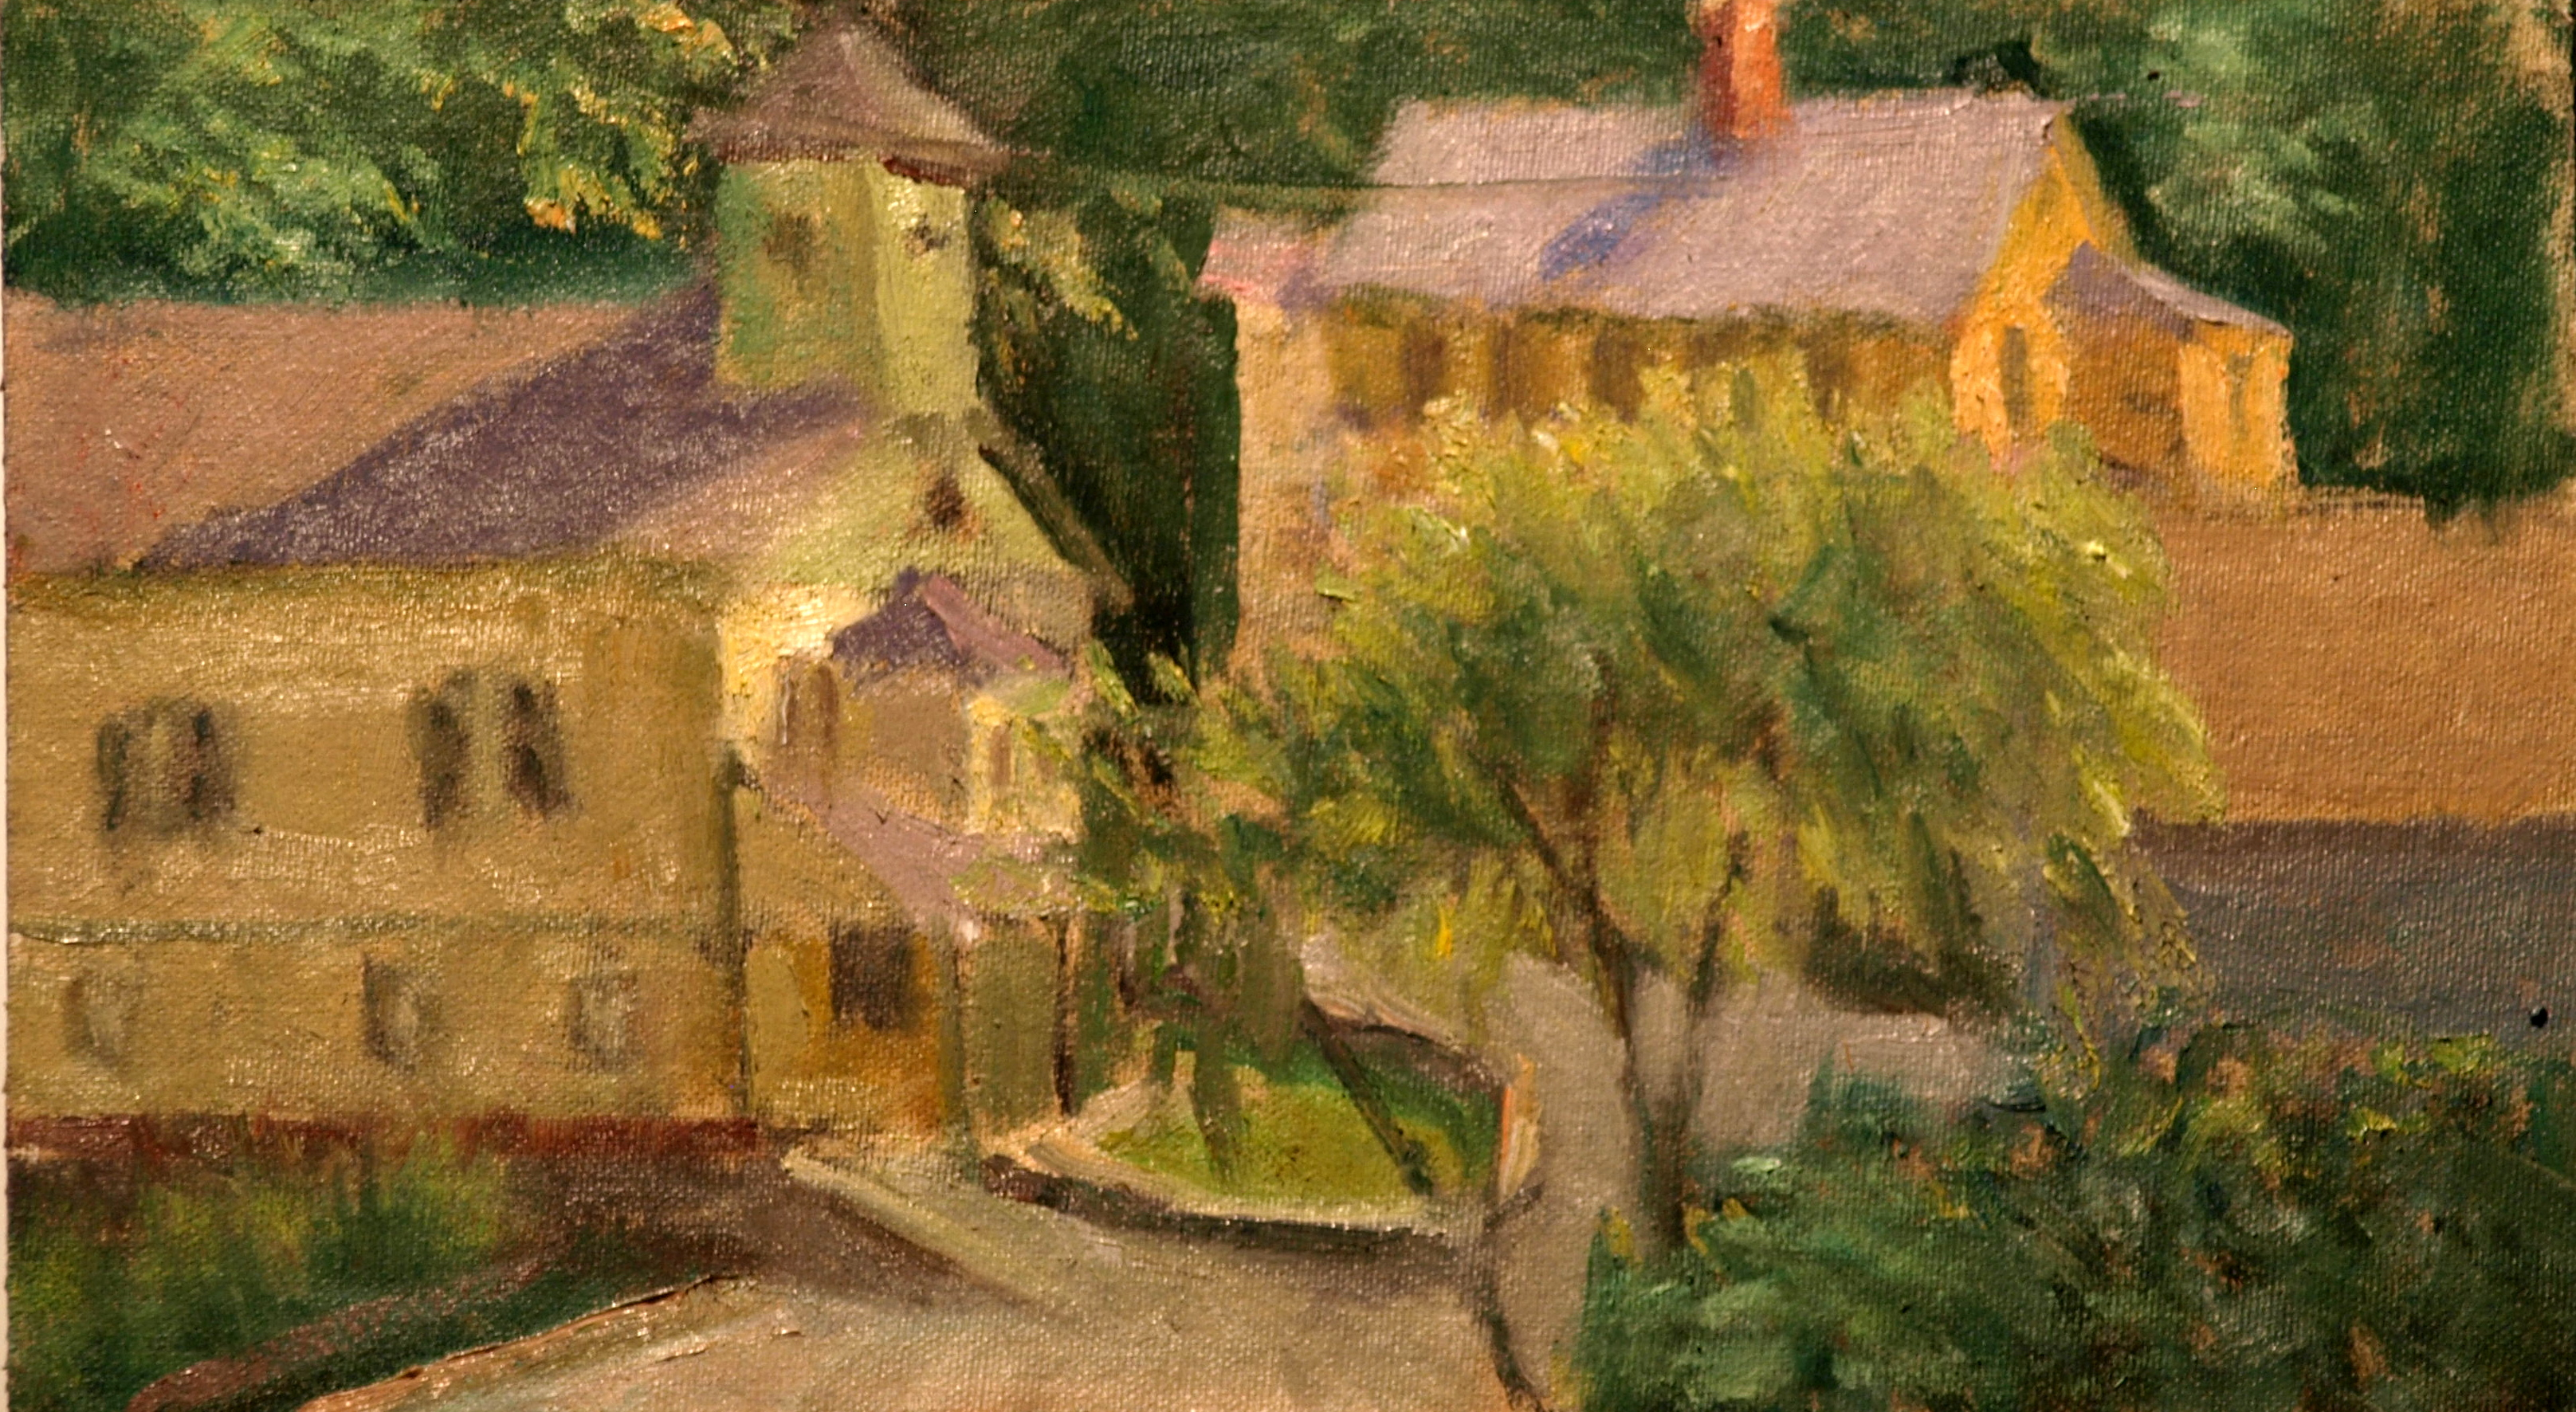 New Preston, Oil on Canvas on Panel, 8 x 14 Inches, by Richard Stalter, $225